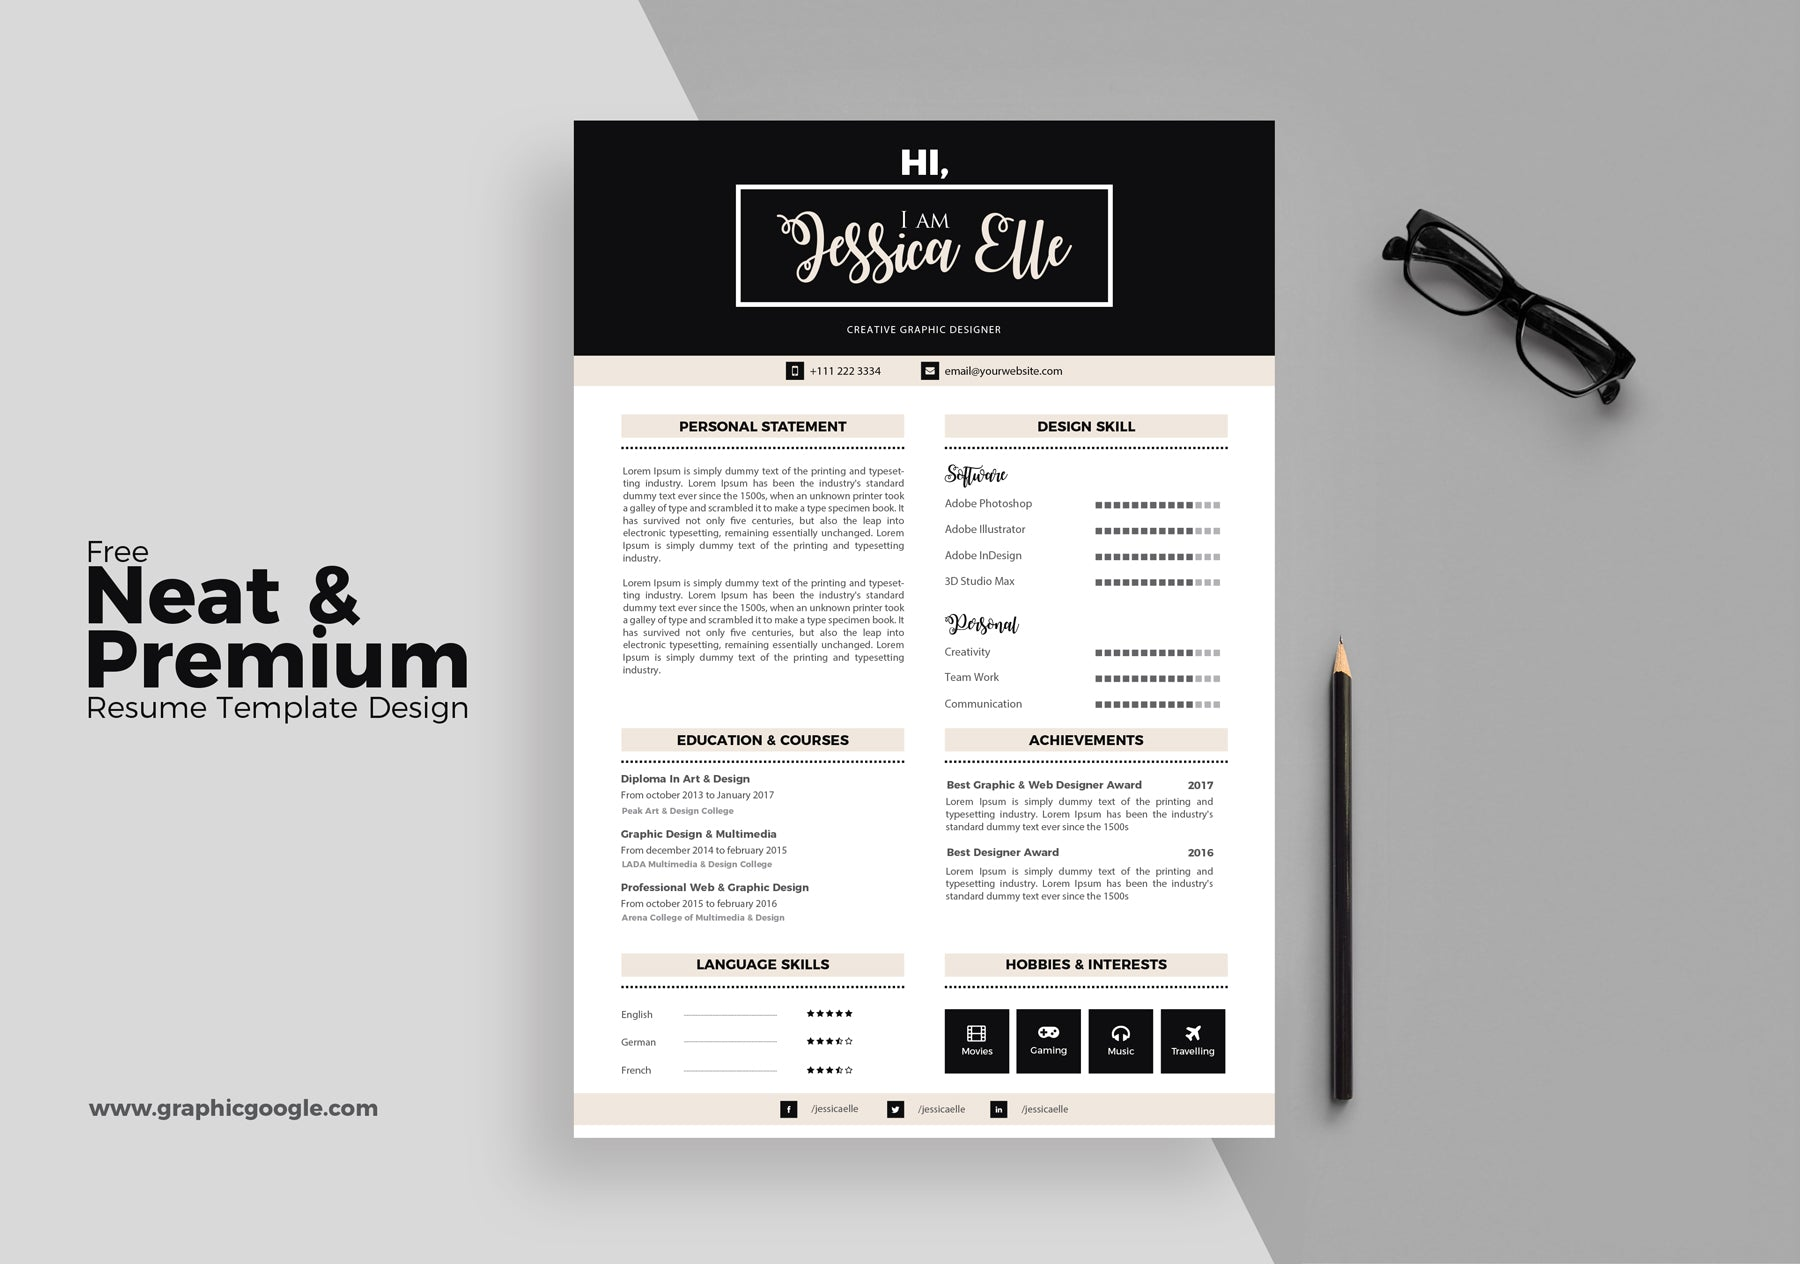 Free Neat And Premium Resume Template Design In Illustrator